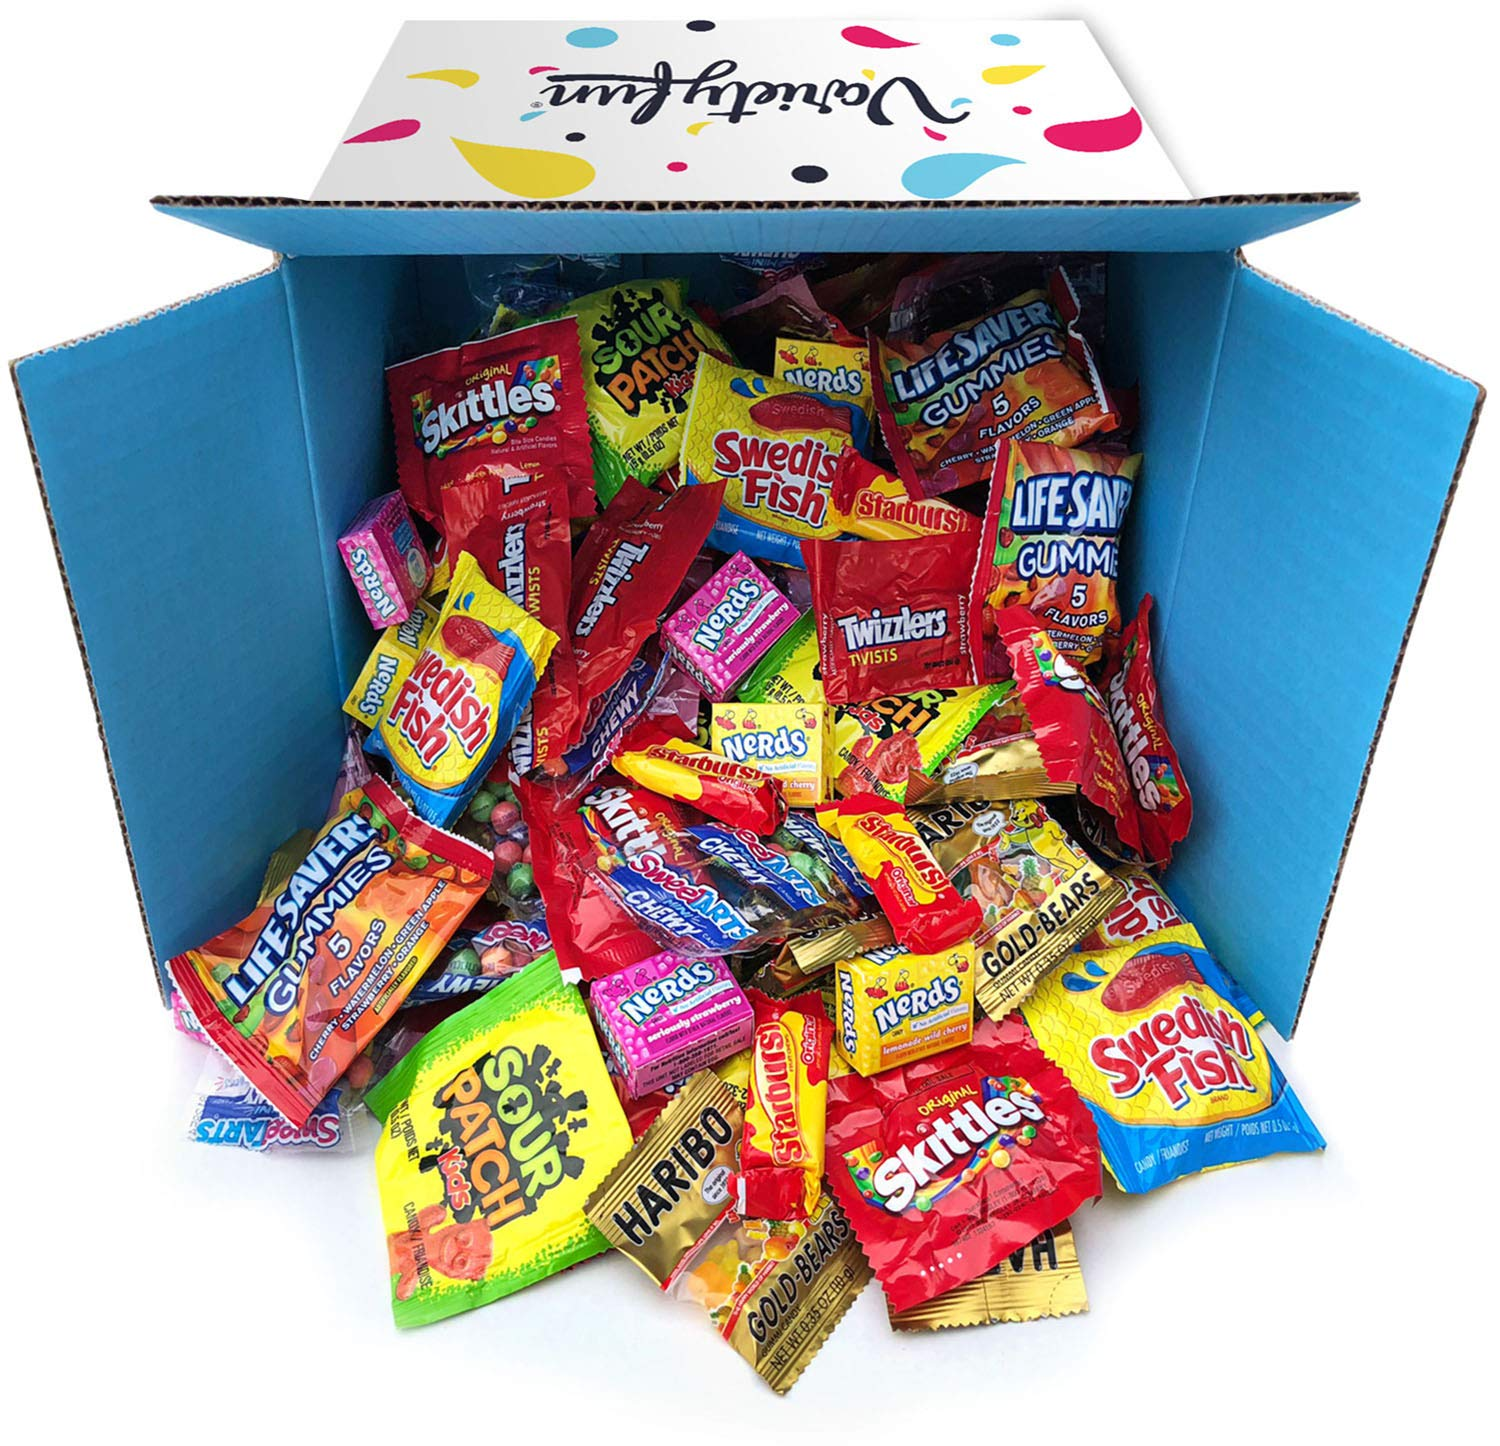 Box open and tipped on its side with fun-size candy packets from familiar brands spilling out.